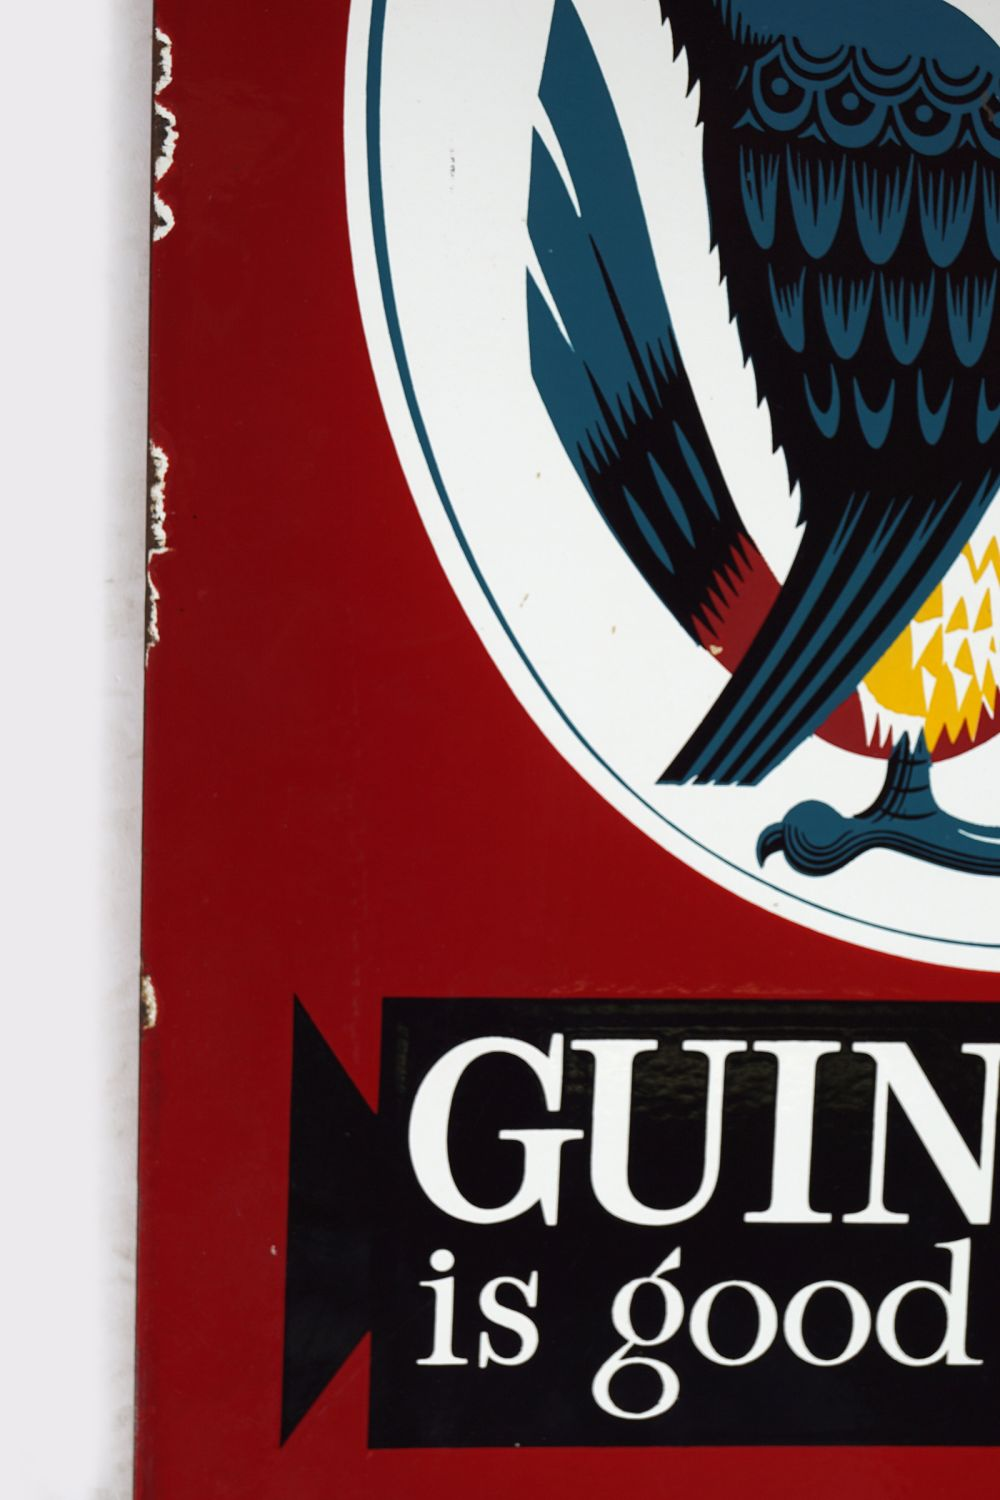 GUINNESS IS GOOD FOR YOU ORIGINAL SIGN - Image 5 of 5